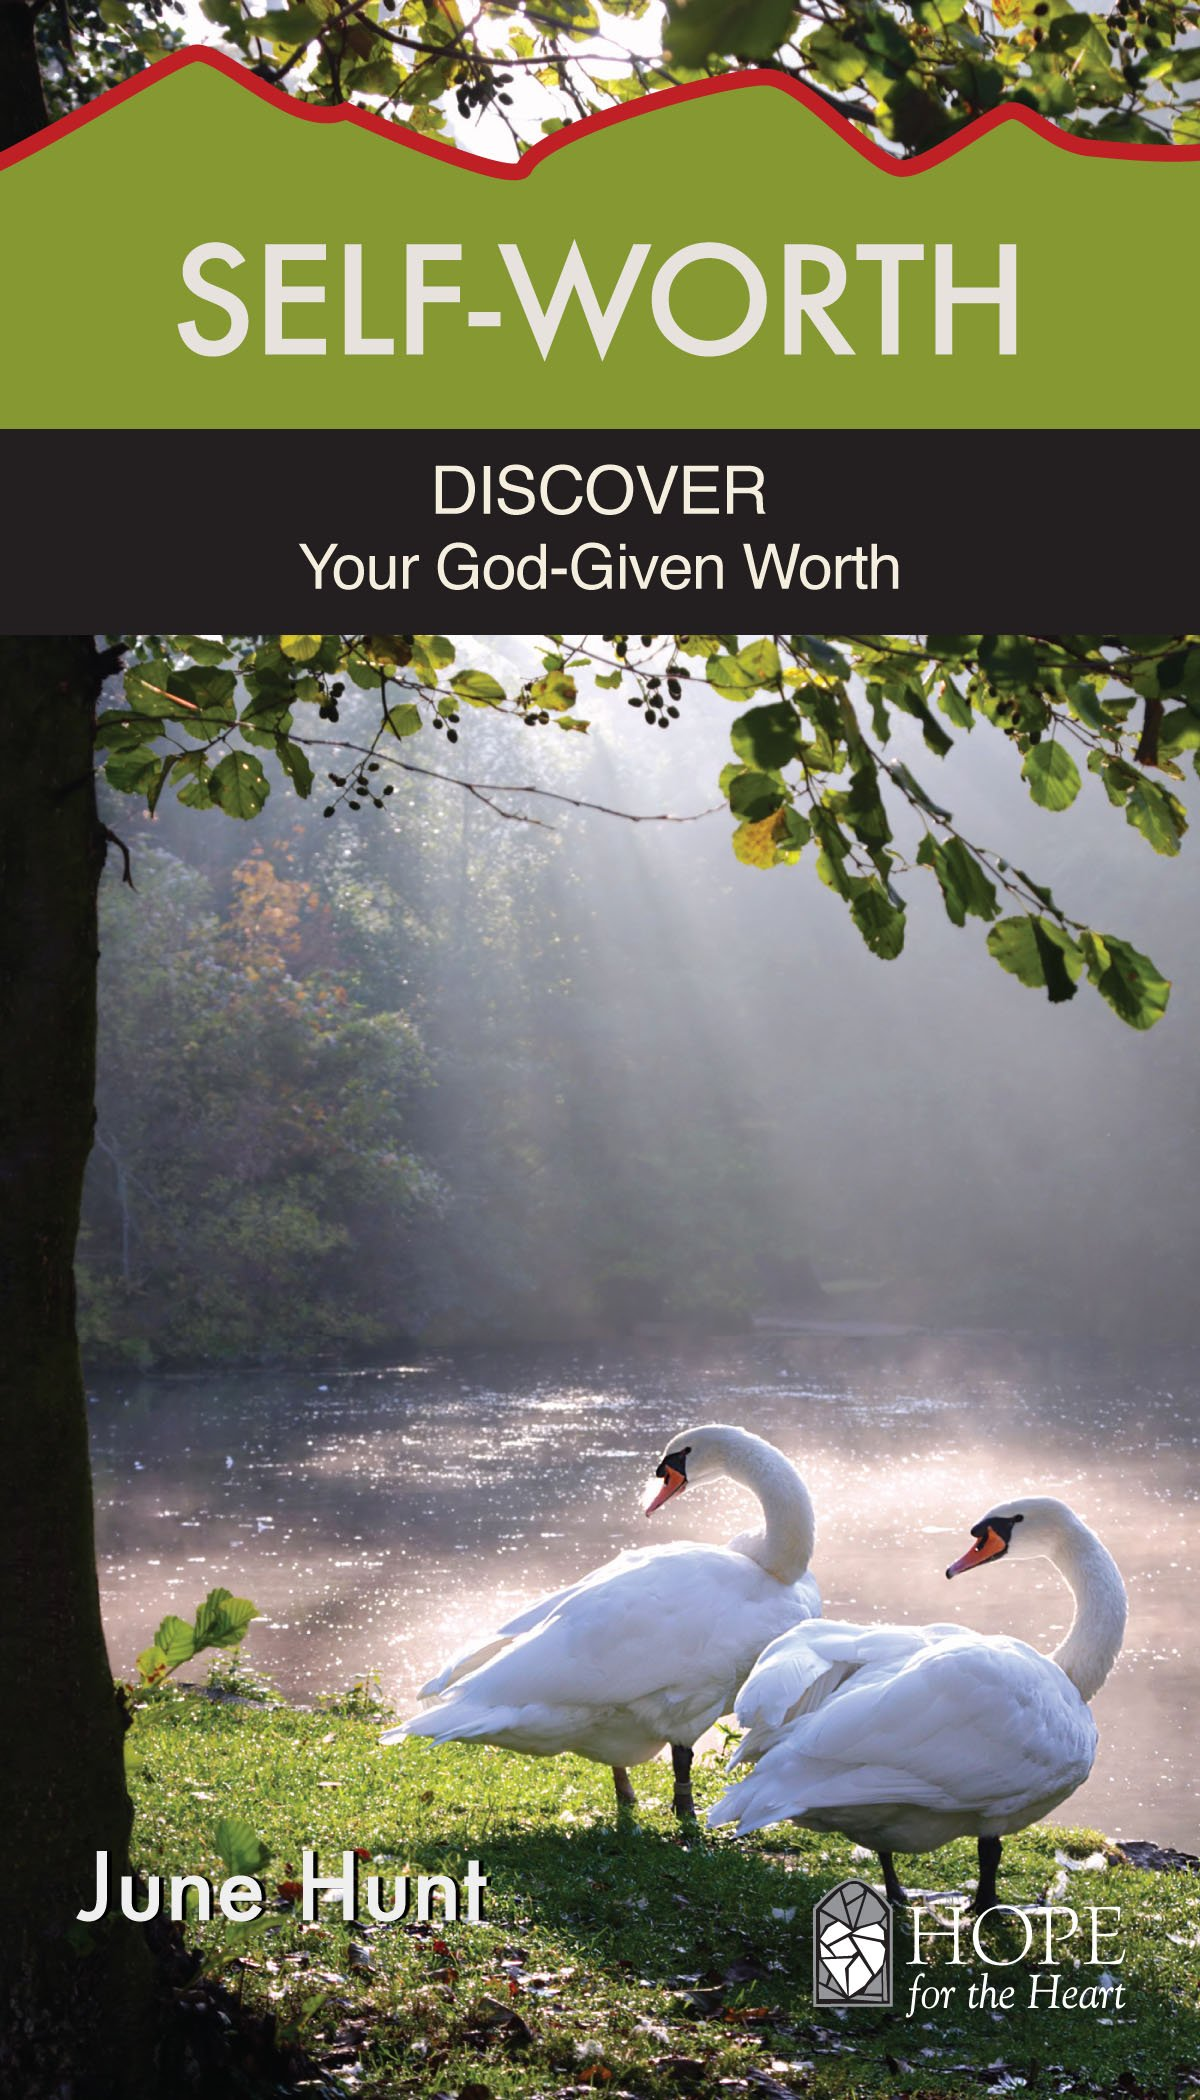 Self-Worth: Discover Your God-Given Worth